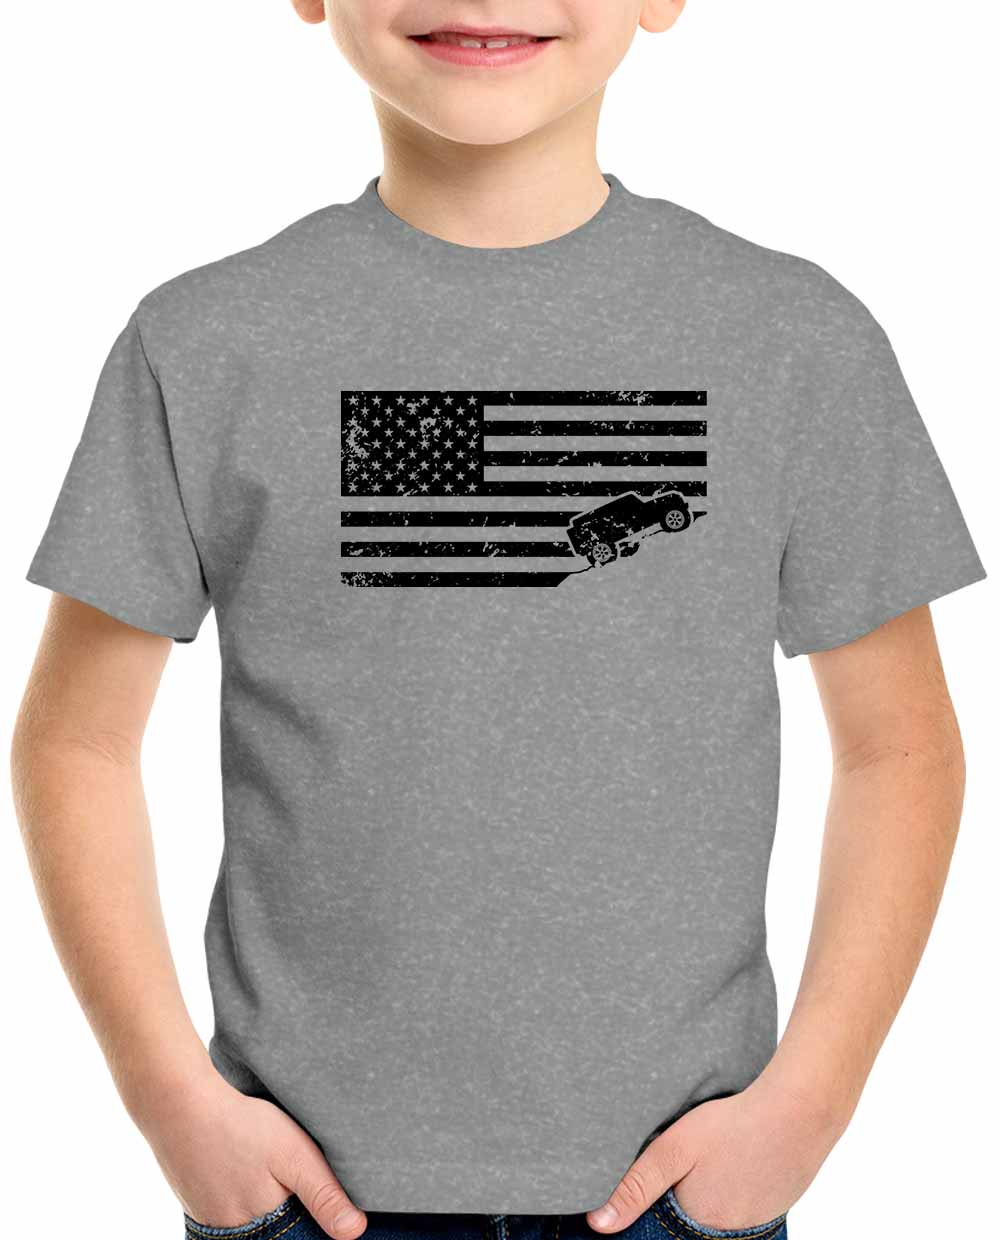 USA-flag-jeep-t-shirt-distressed-youth-kids-ashe-gray